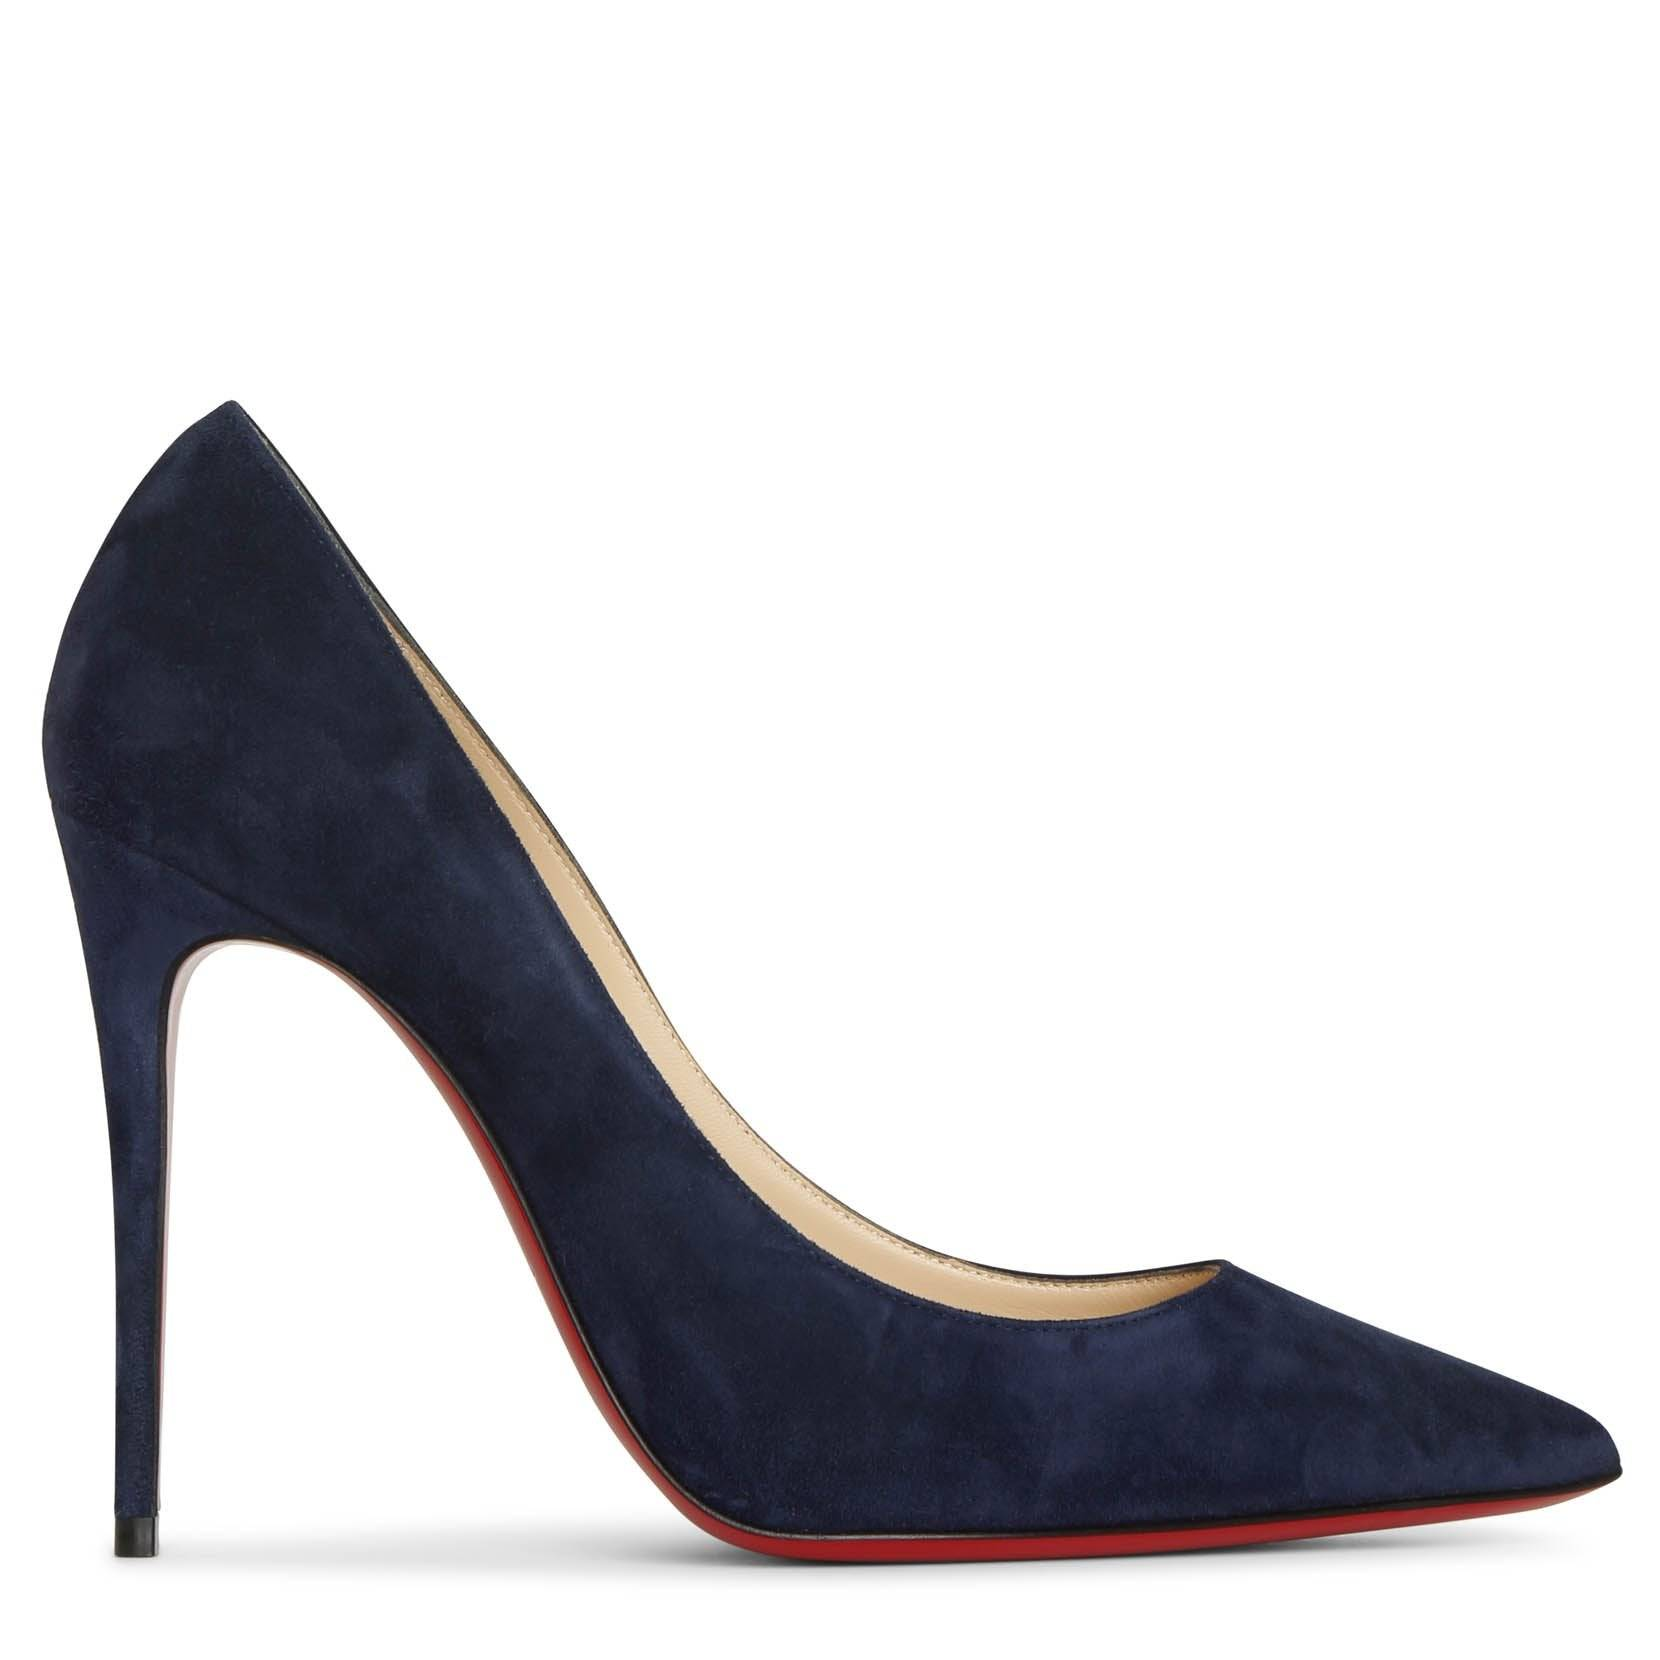 Christian Louboutin Kate 100 midnight blue suede pumps  - blue - female - Size: 36.5